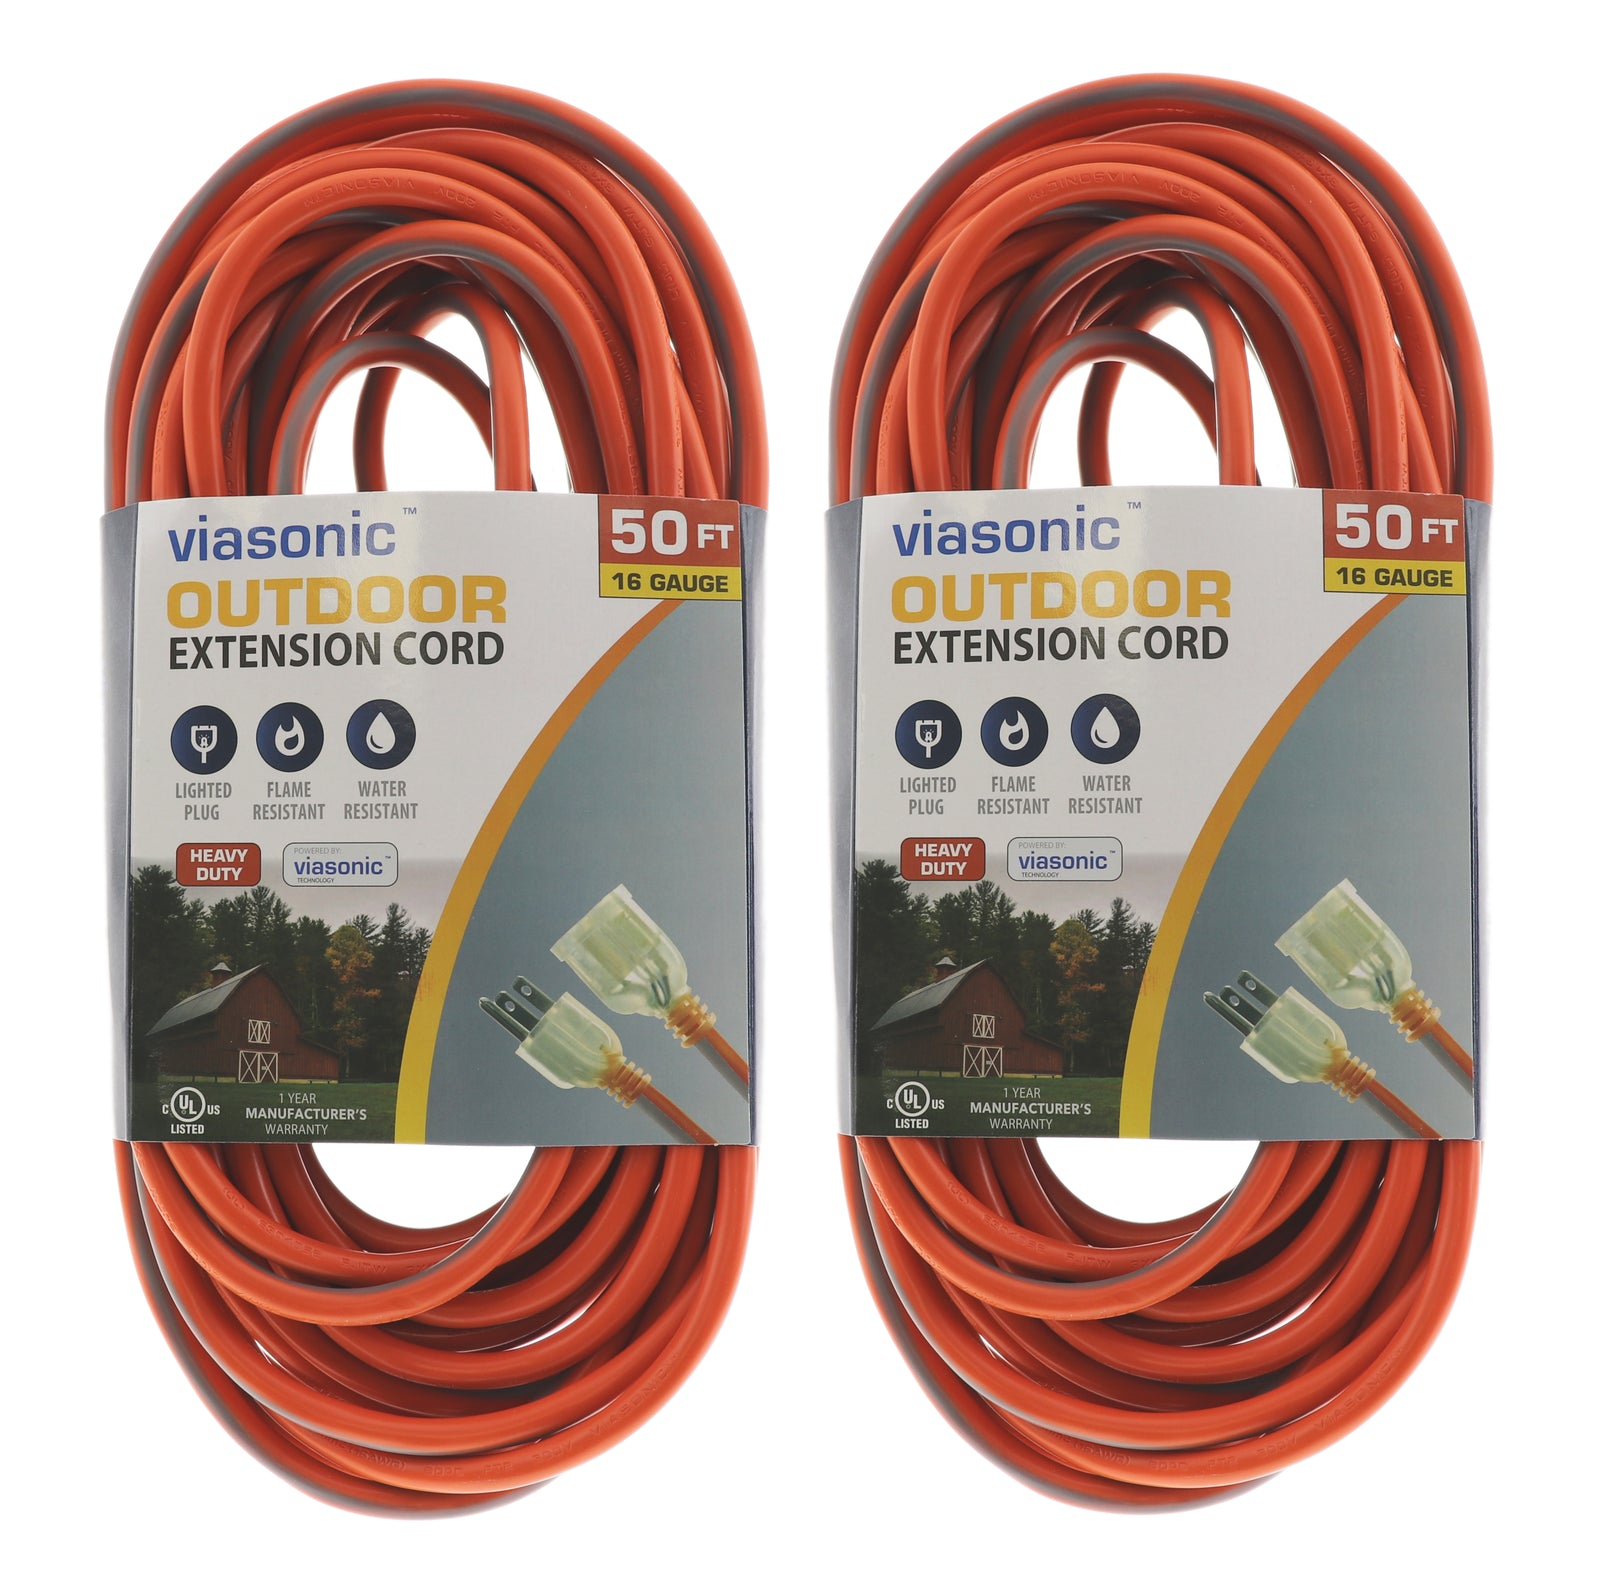 50FT SJTW 16-Gauge 3-Prong Plug - Outdoor Cord